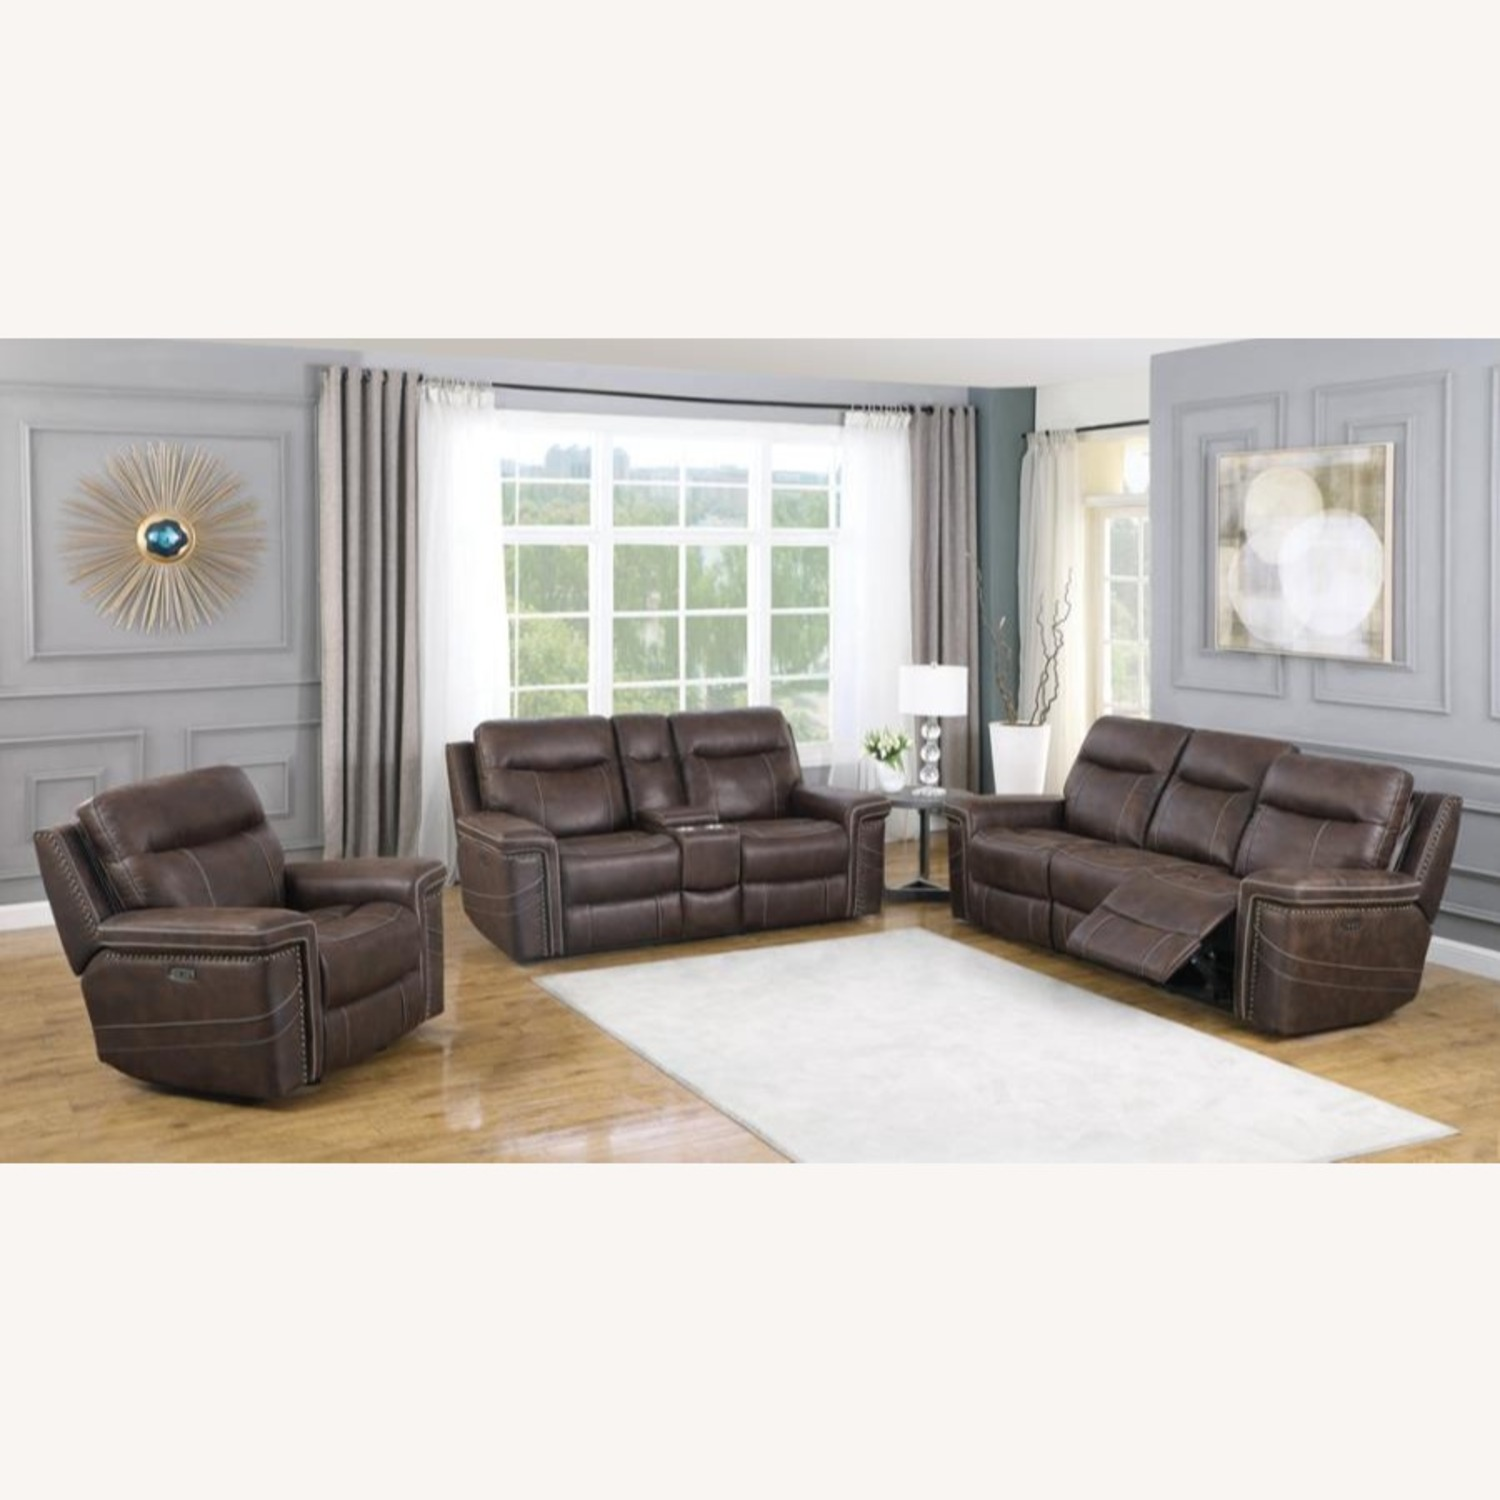 Power2 Sofa In Rich Brown Faux Suede - image-7